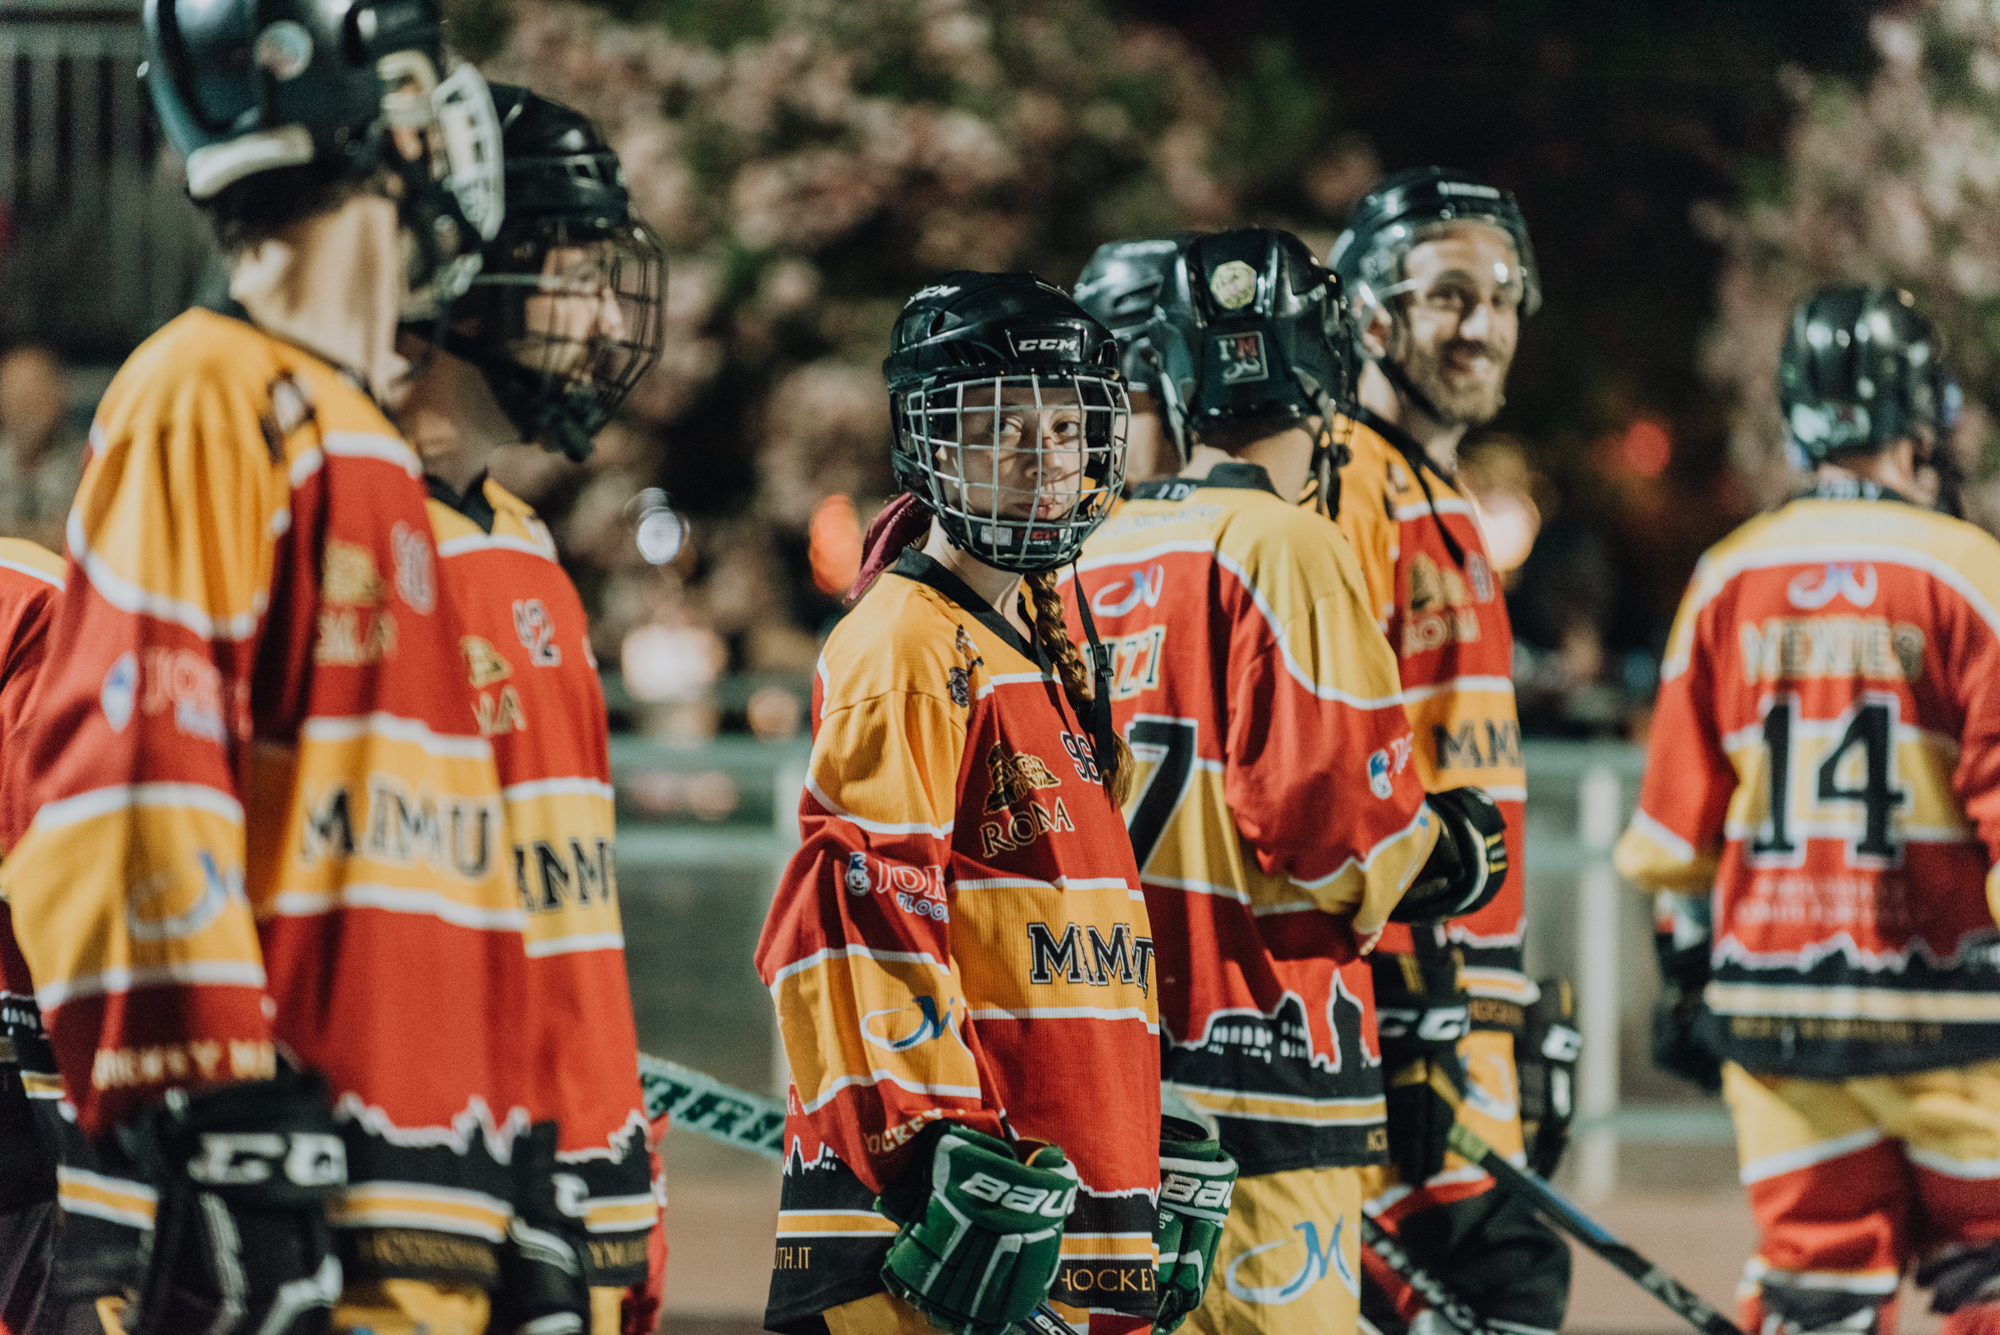 hockey inline, mammuth hockey, mammuth roma, inline hockey, inline hockey roma, roller hockey, Giacio Forever, San Benedetto, Rita foldi photography, sports photography